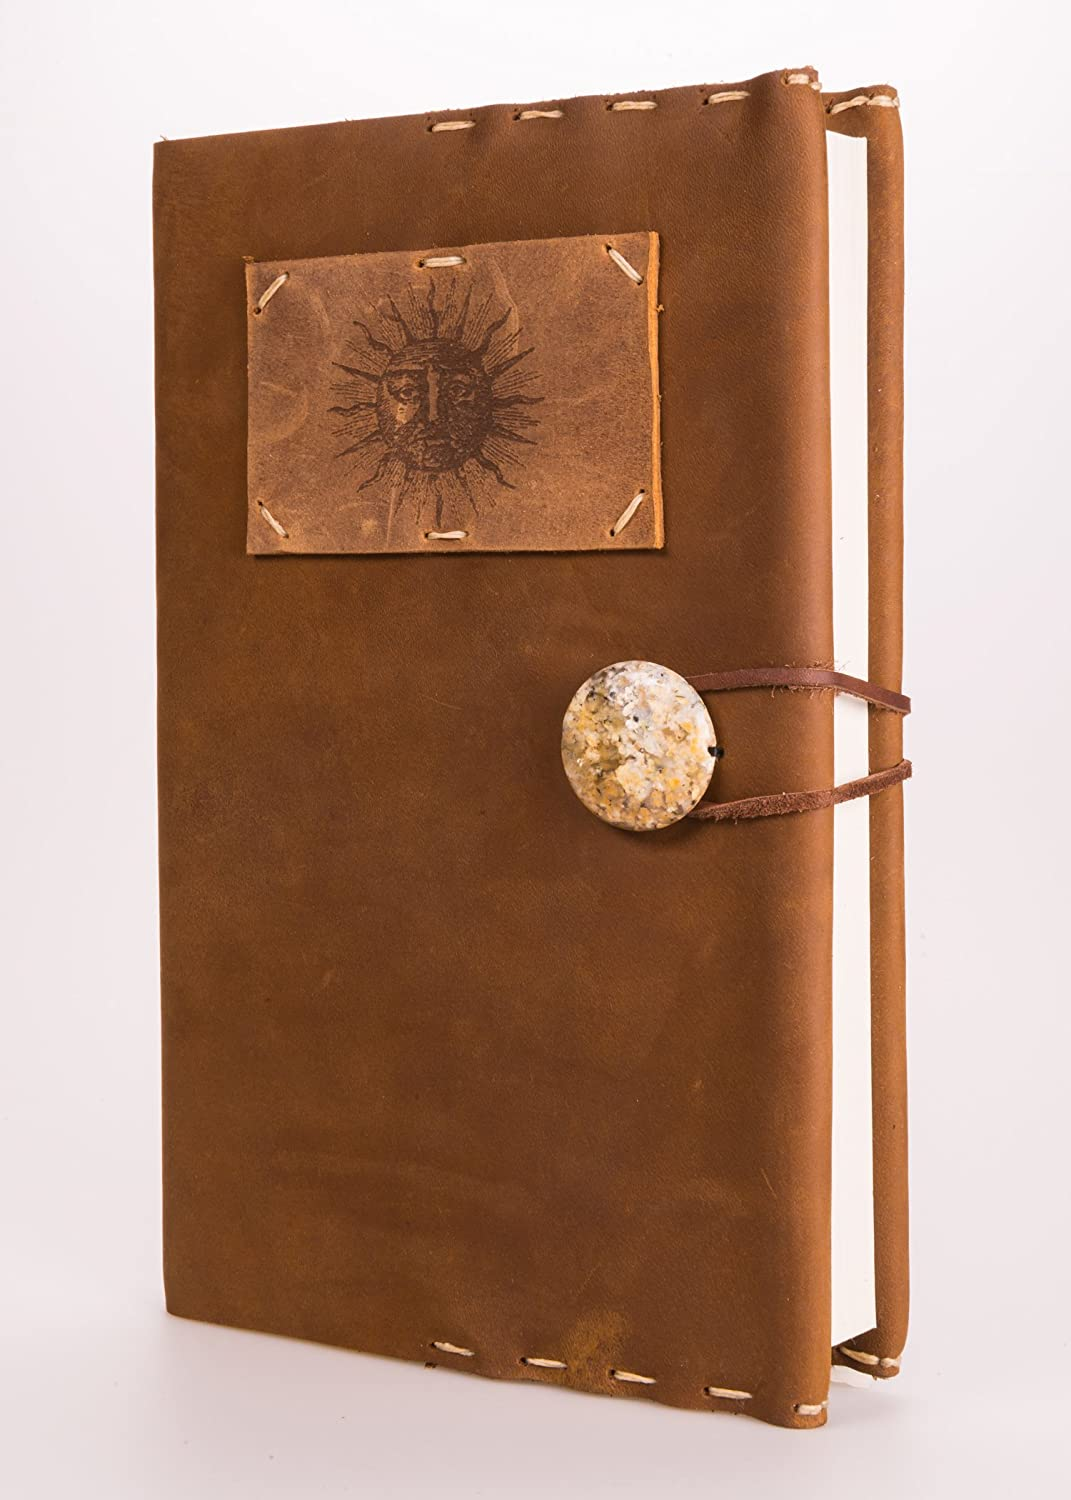 Refillable Sun Leather Journal with Jasper Concho + 220 Blank Pages 5.5' x 8.5' (JM-45)